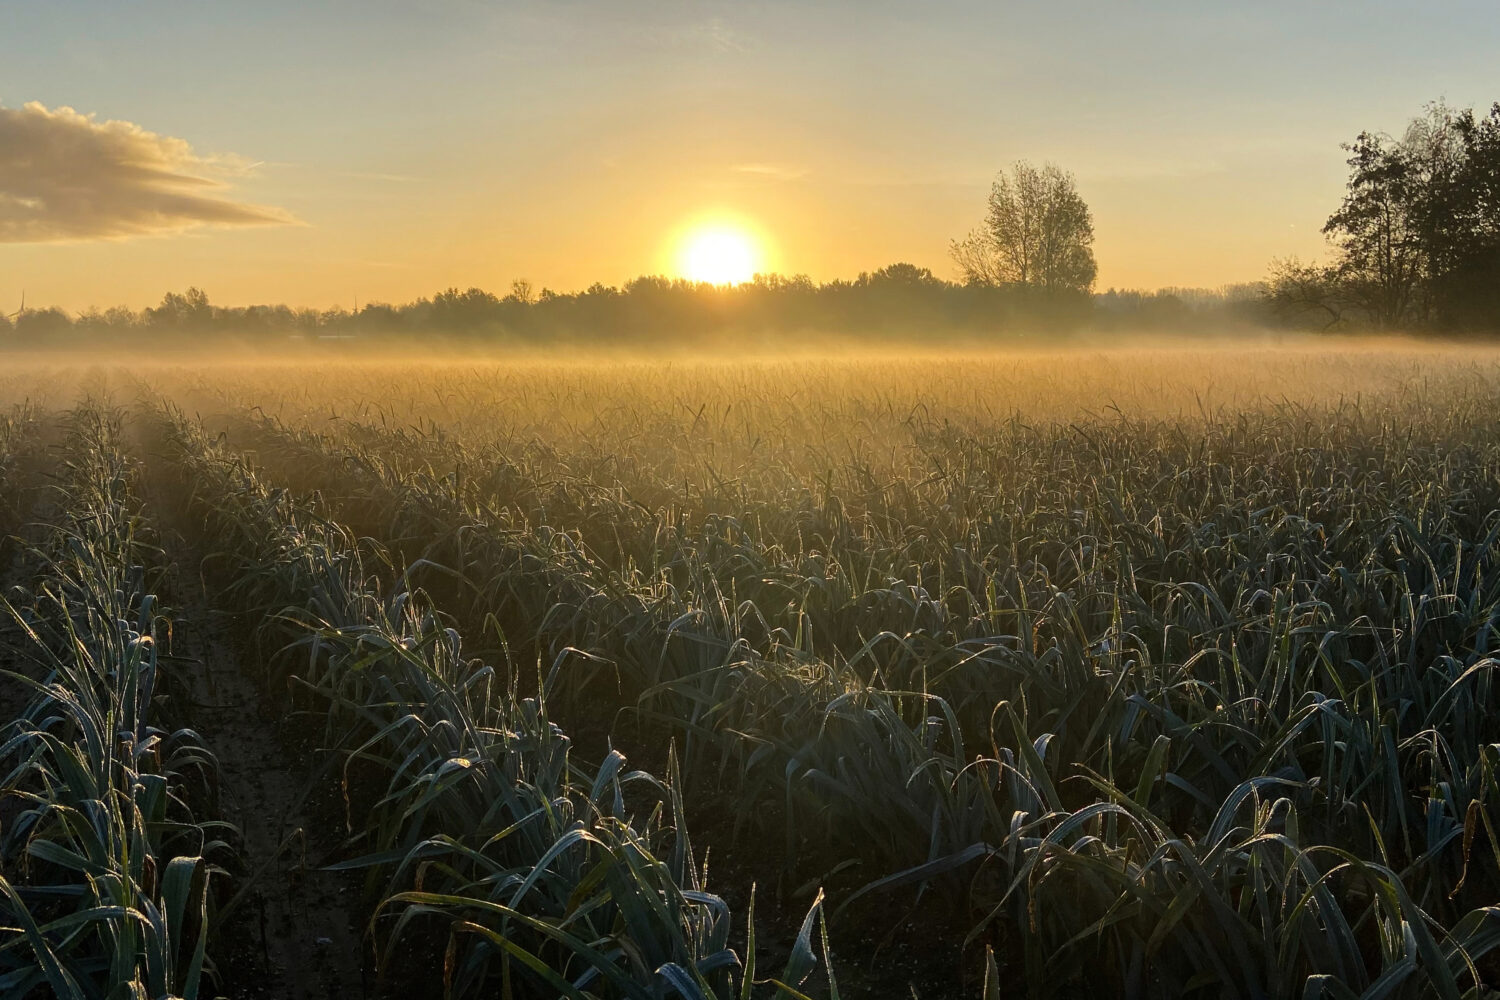 Field of crops in partial light as sun hovers half way on horizon with mist rising in far distance